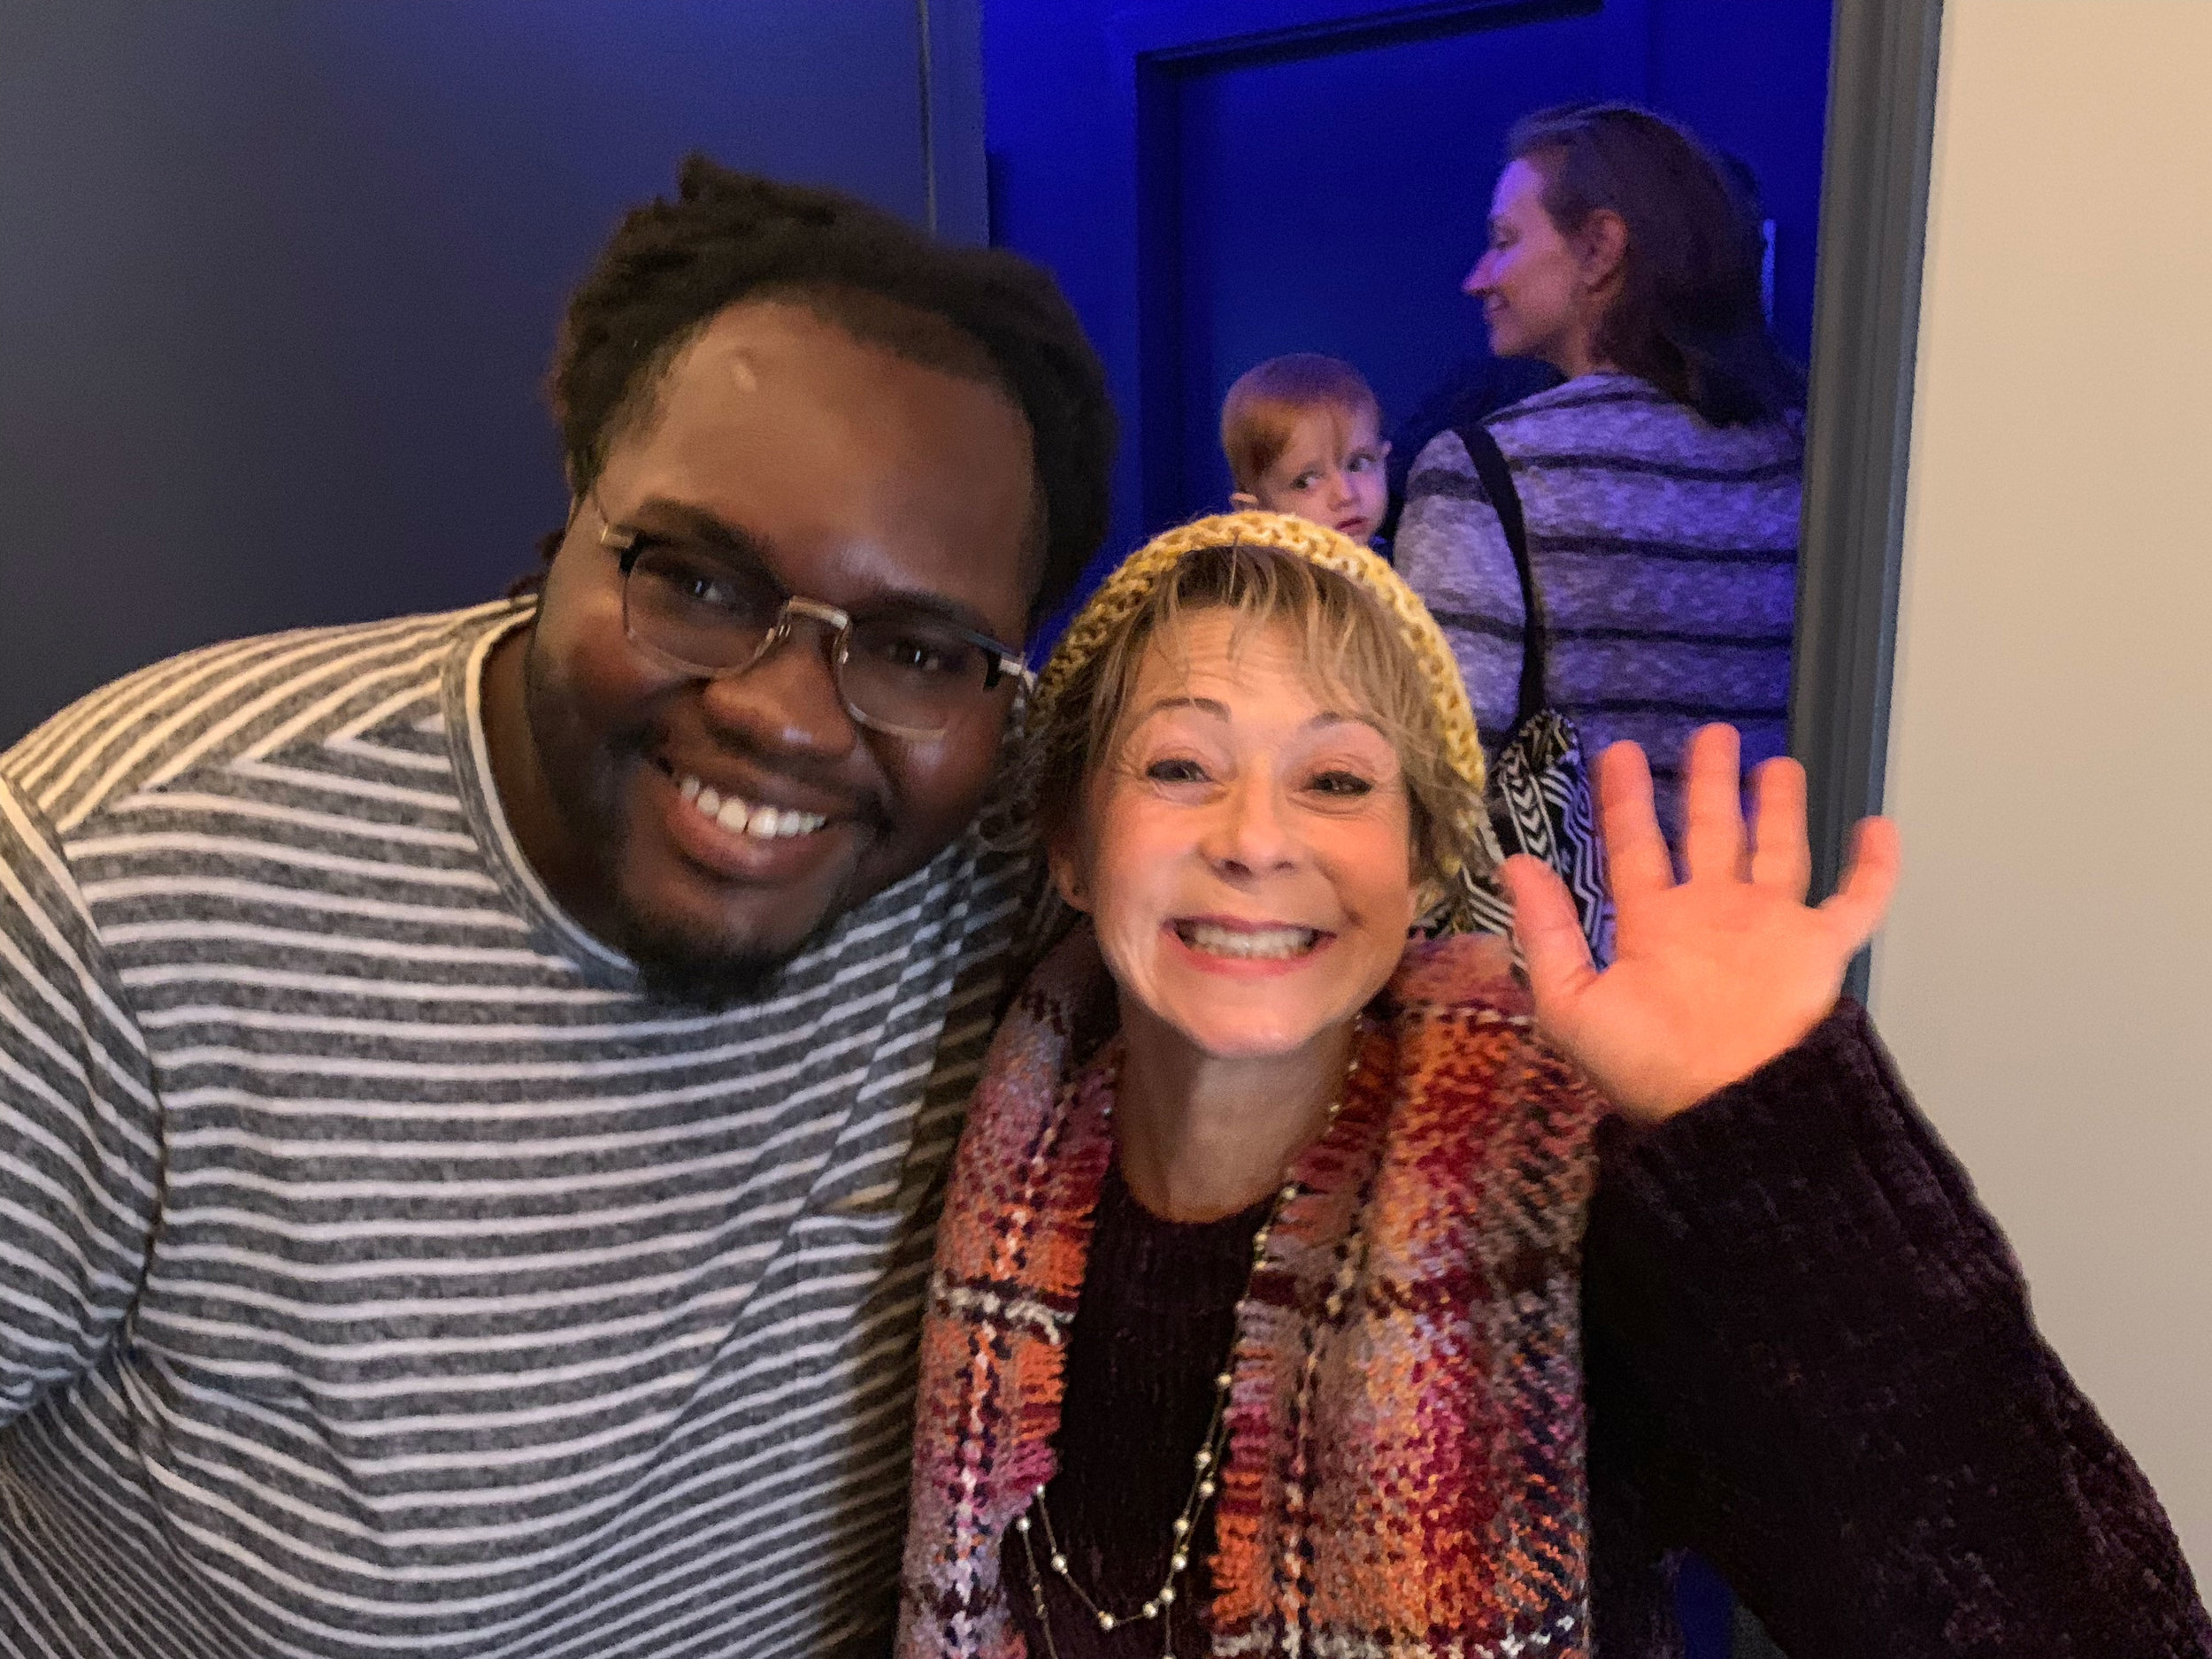 Michael Smith & Debi Derryberry